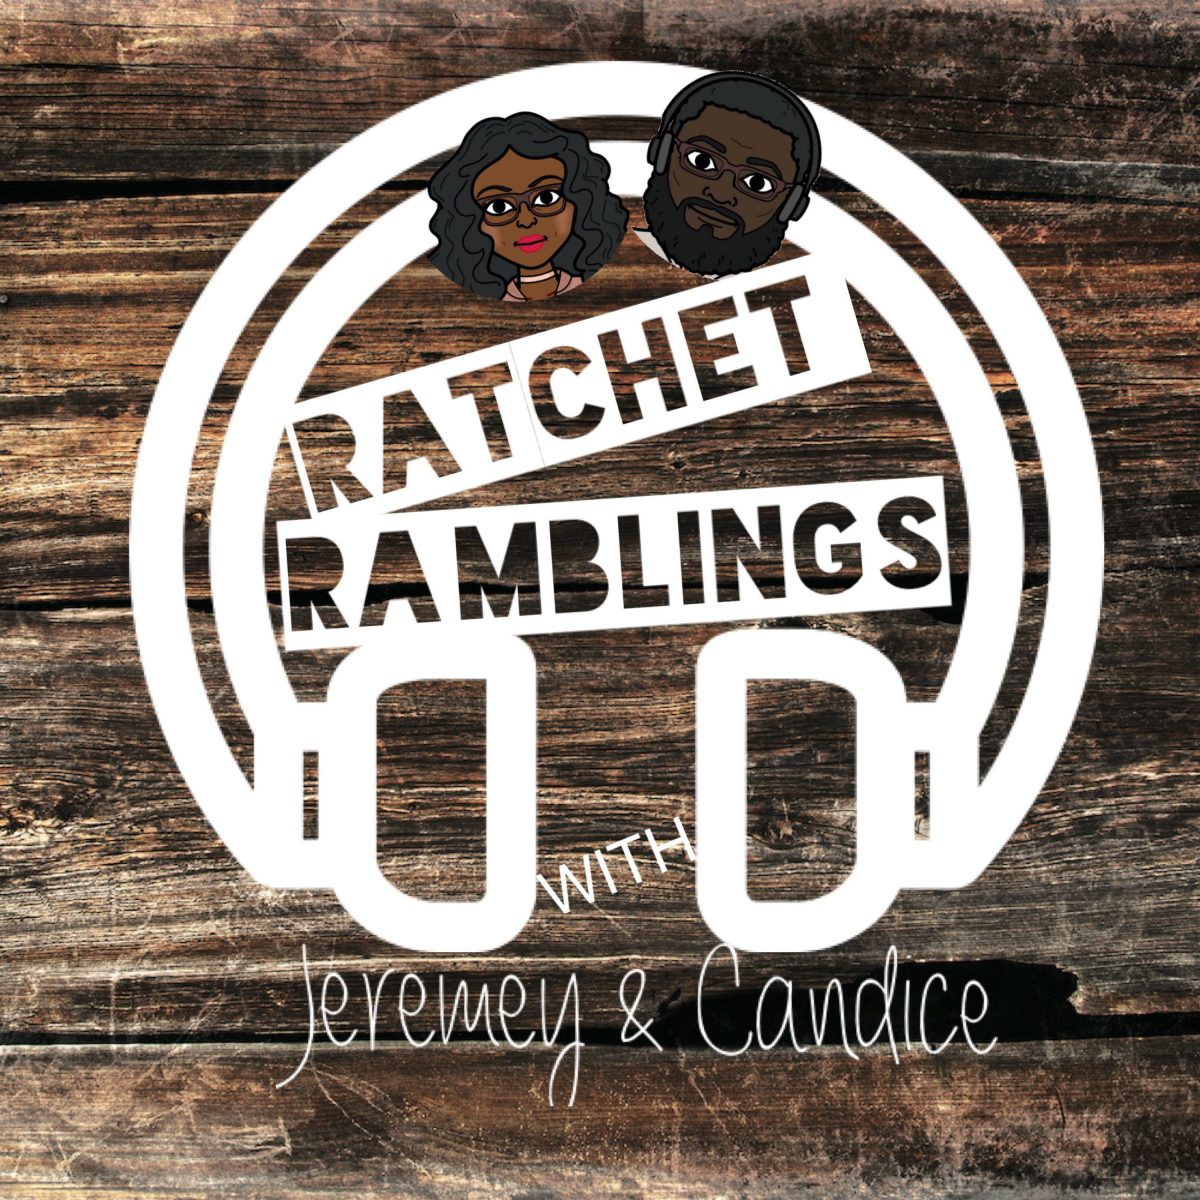 Ratchet Ramblings Episode 37: The Girls Are Lying